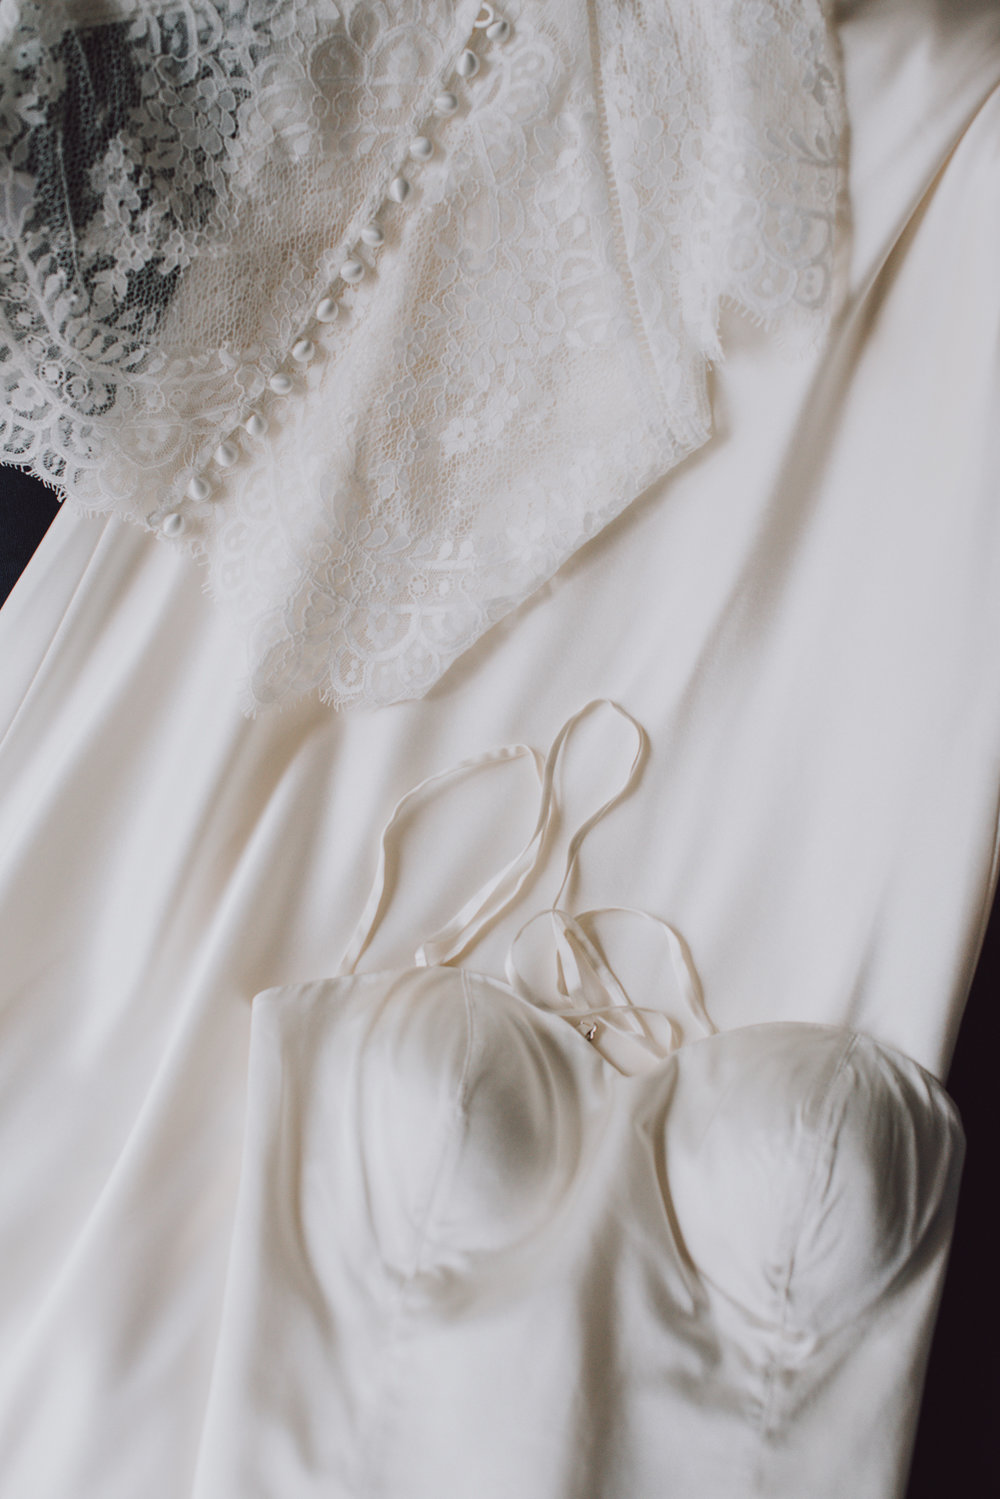 len_lynne_wedding_dress_edgartown-3681.jpg